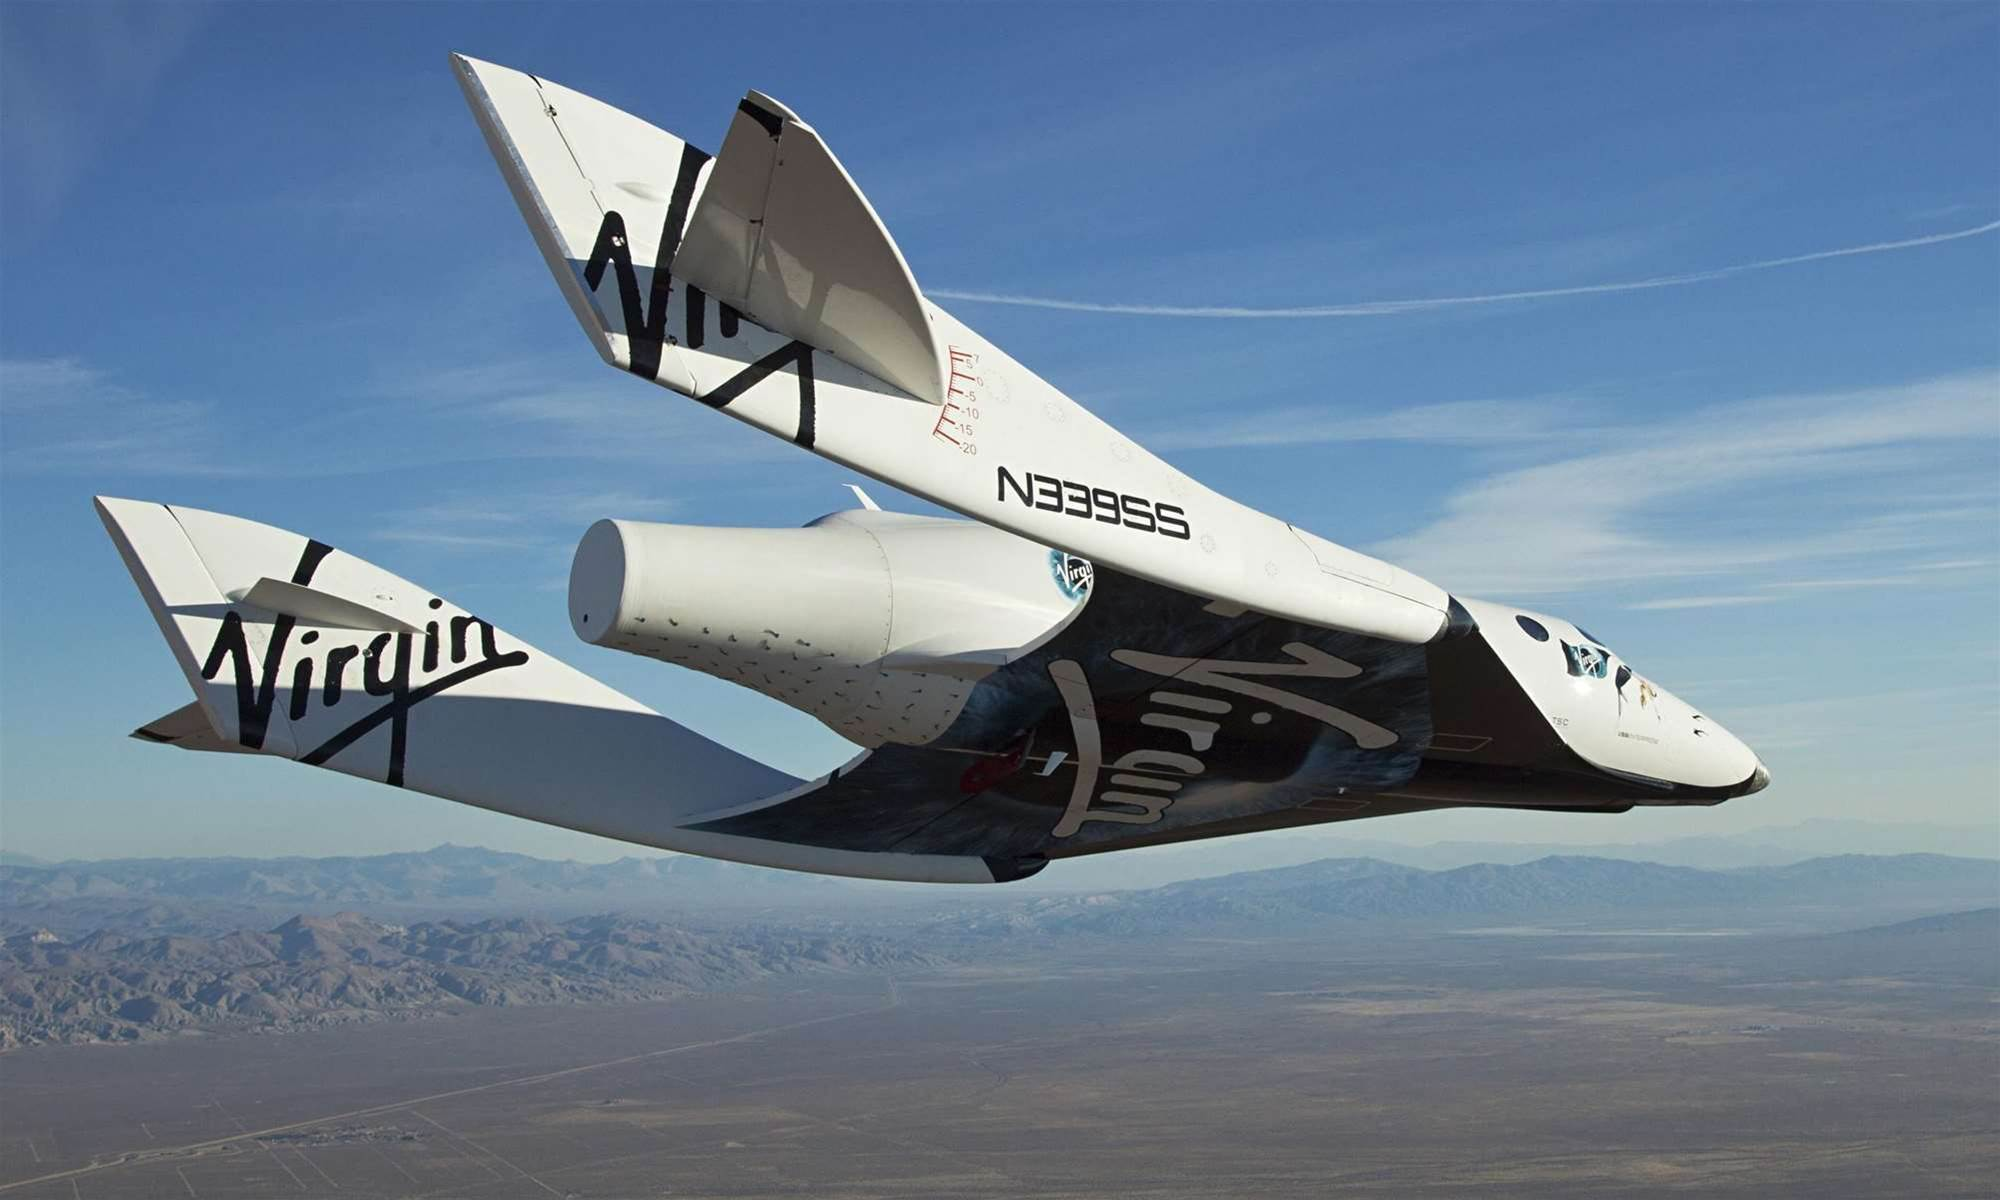 Virgin Galactic's SpaceShipTwo Crashed During A Mojave Test Flight [Developing]